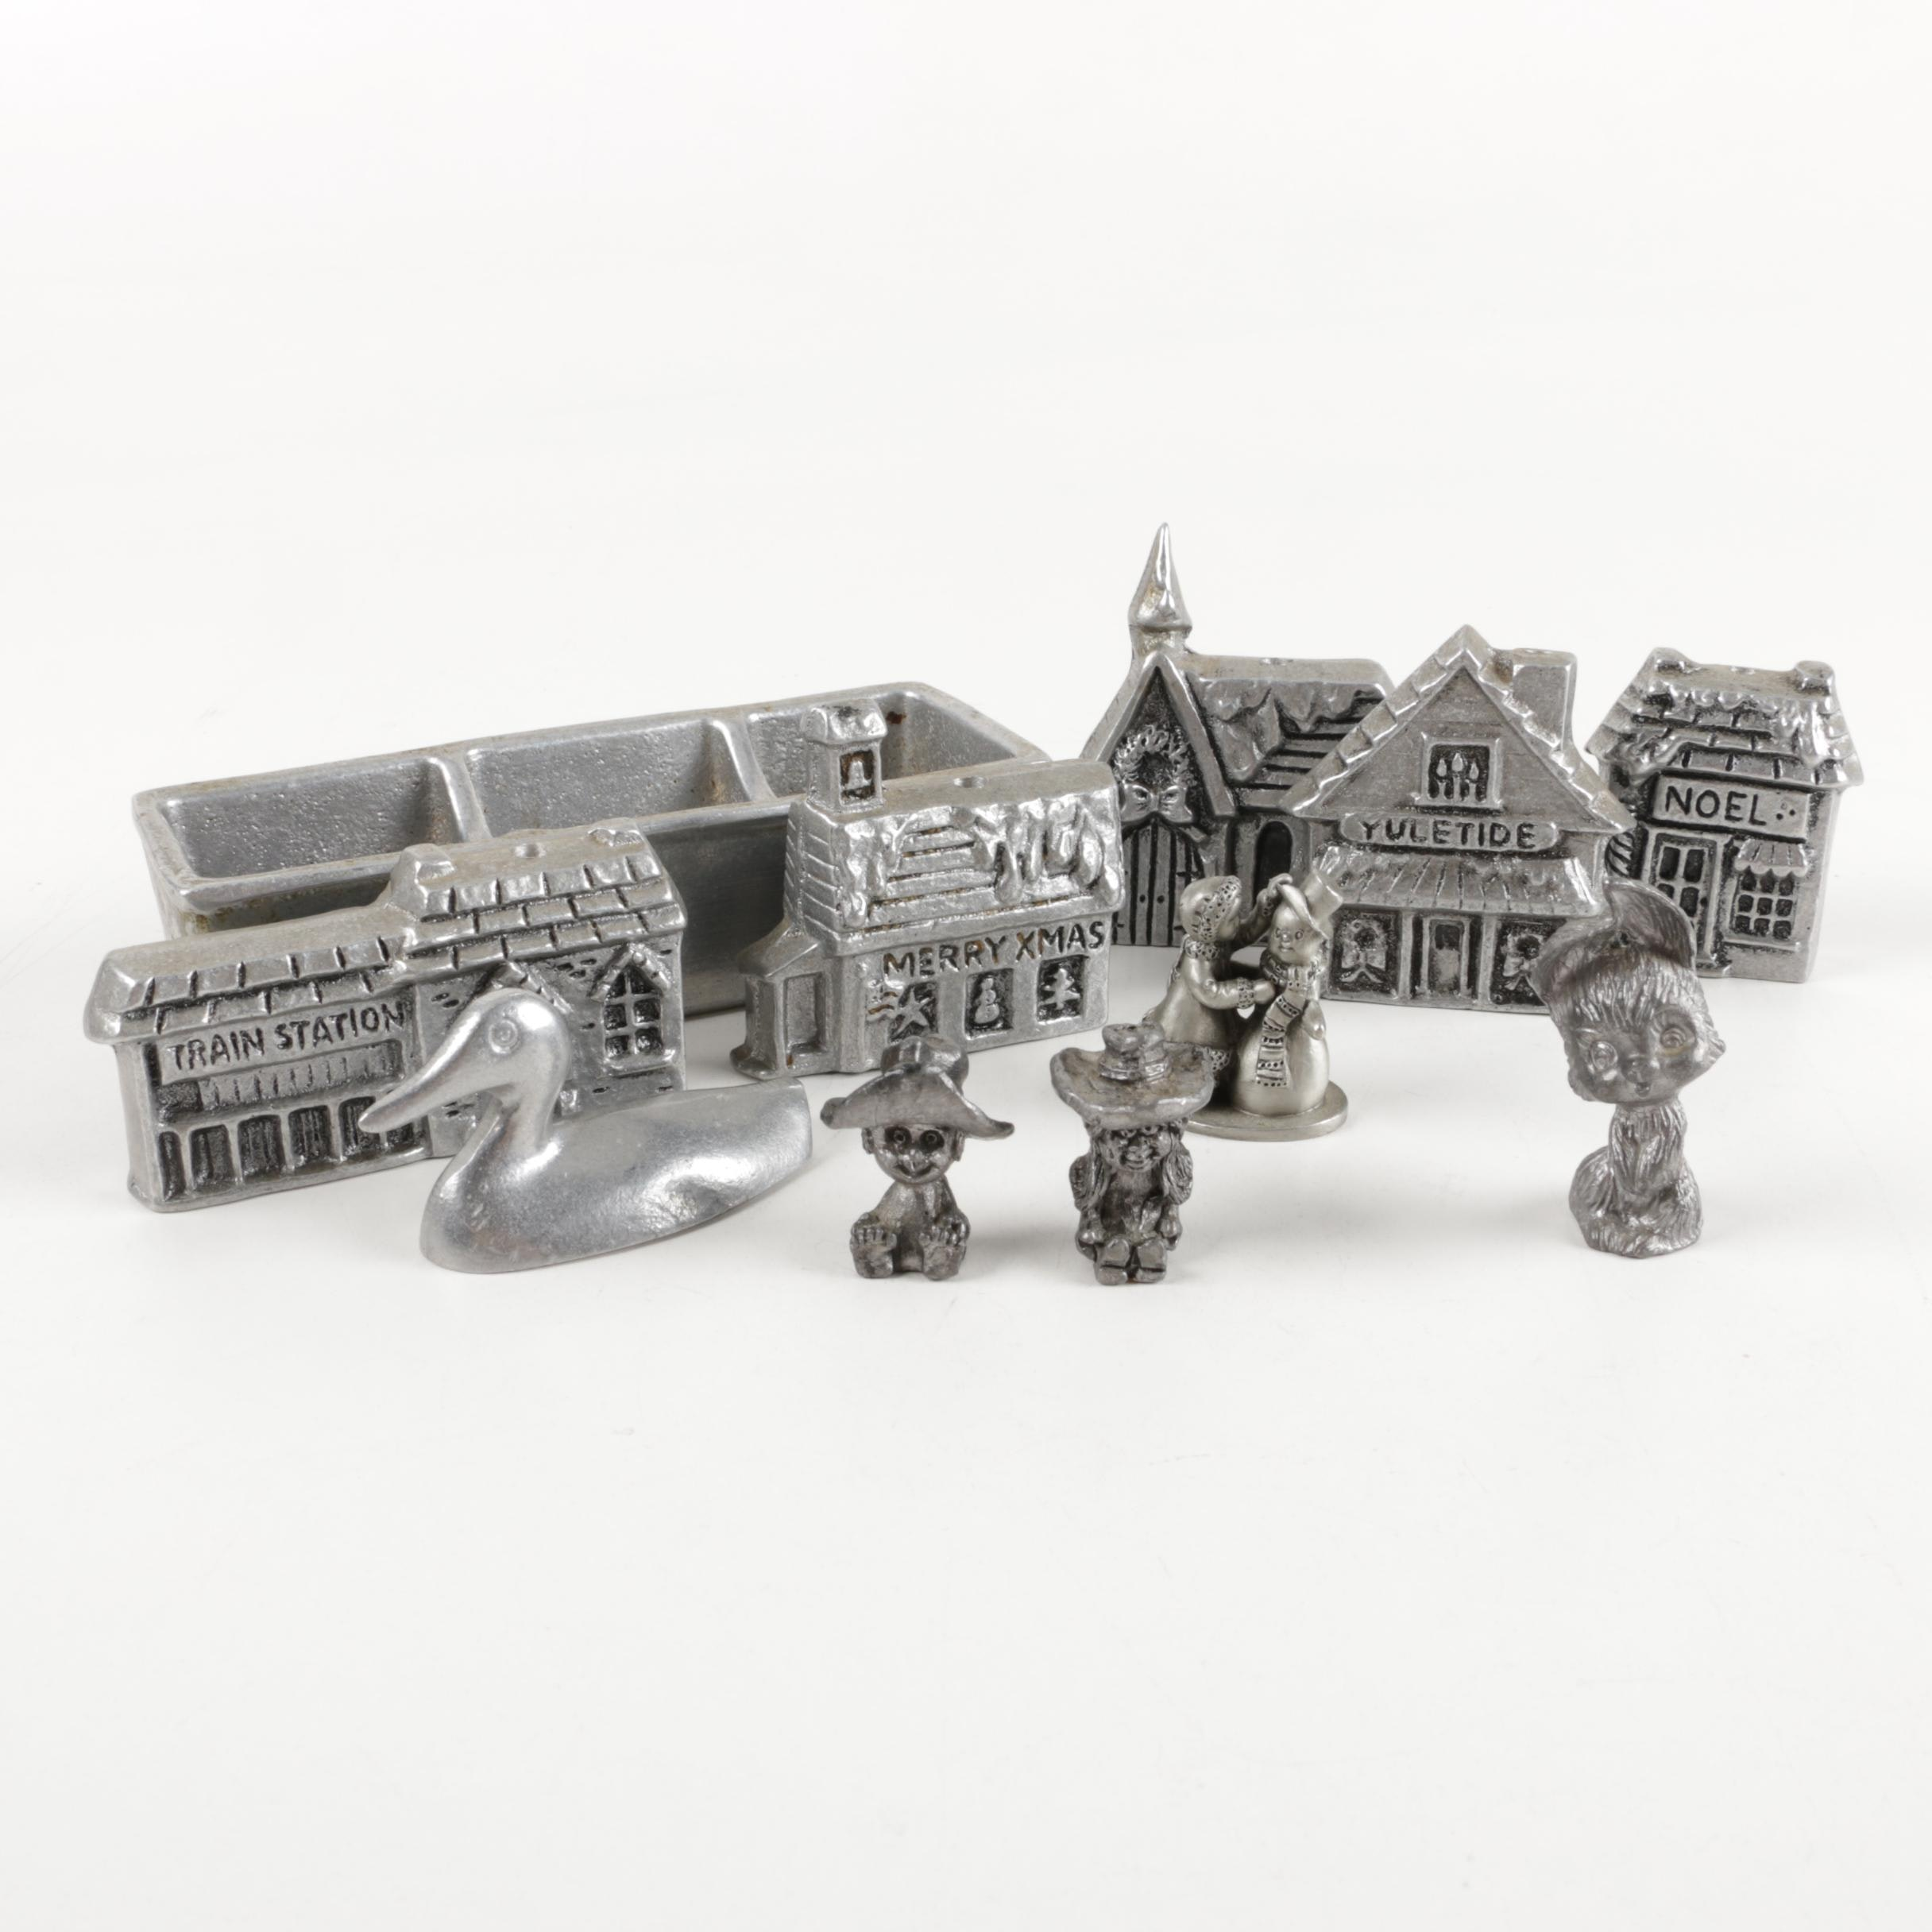 Pewter Figurines and Wilton Armetable Place Card Holder